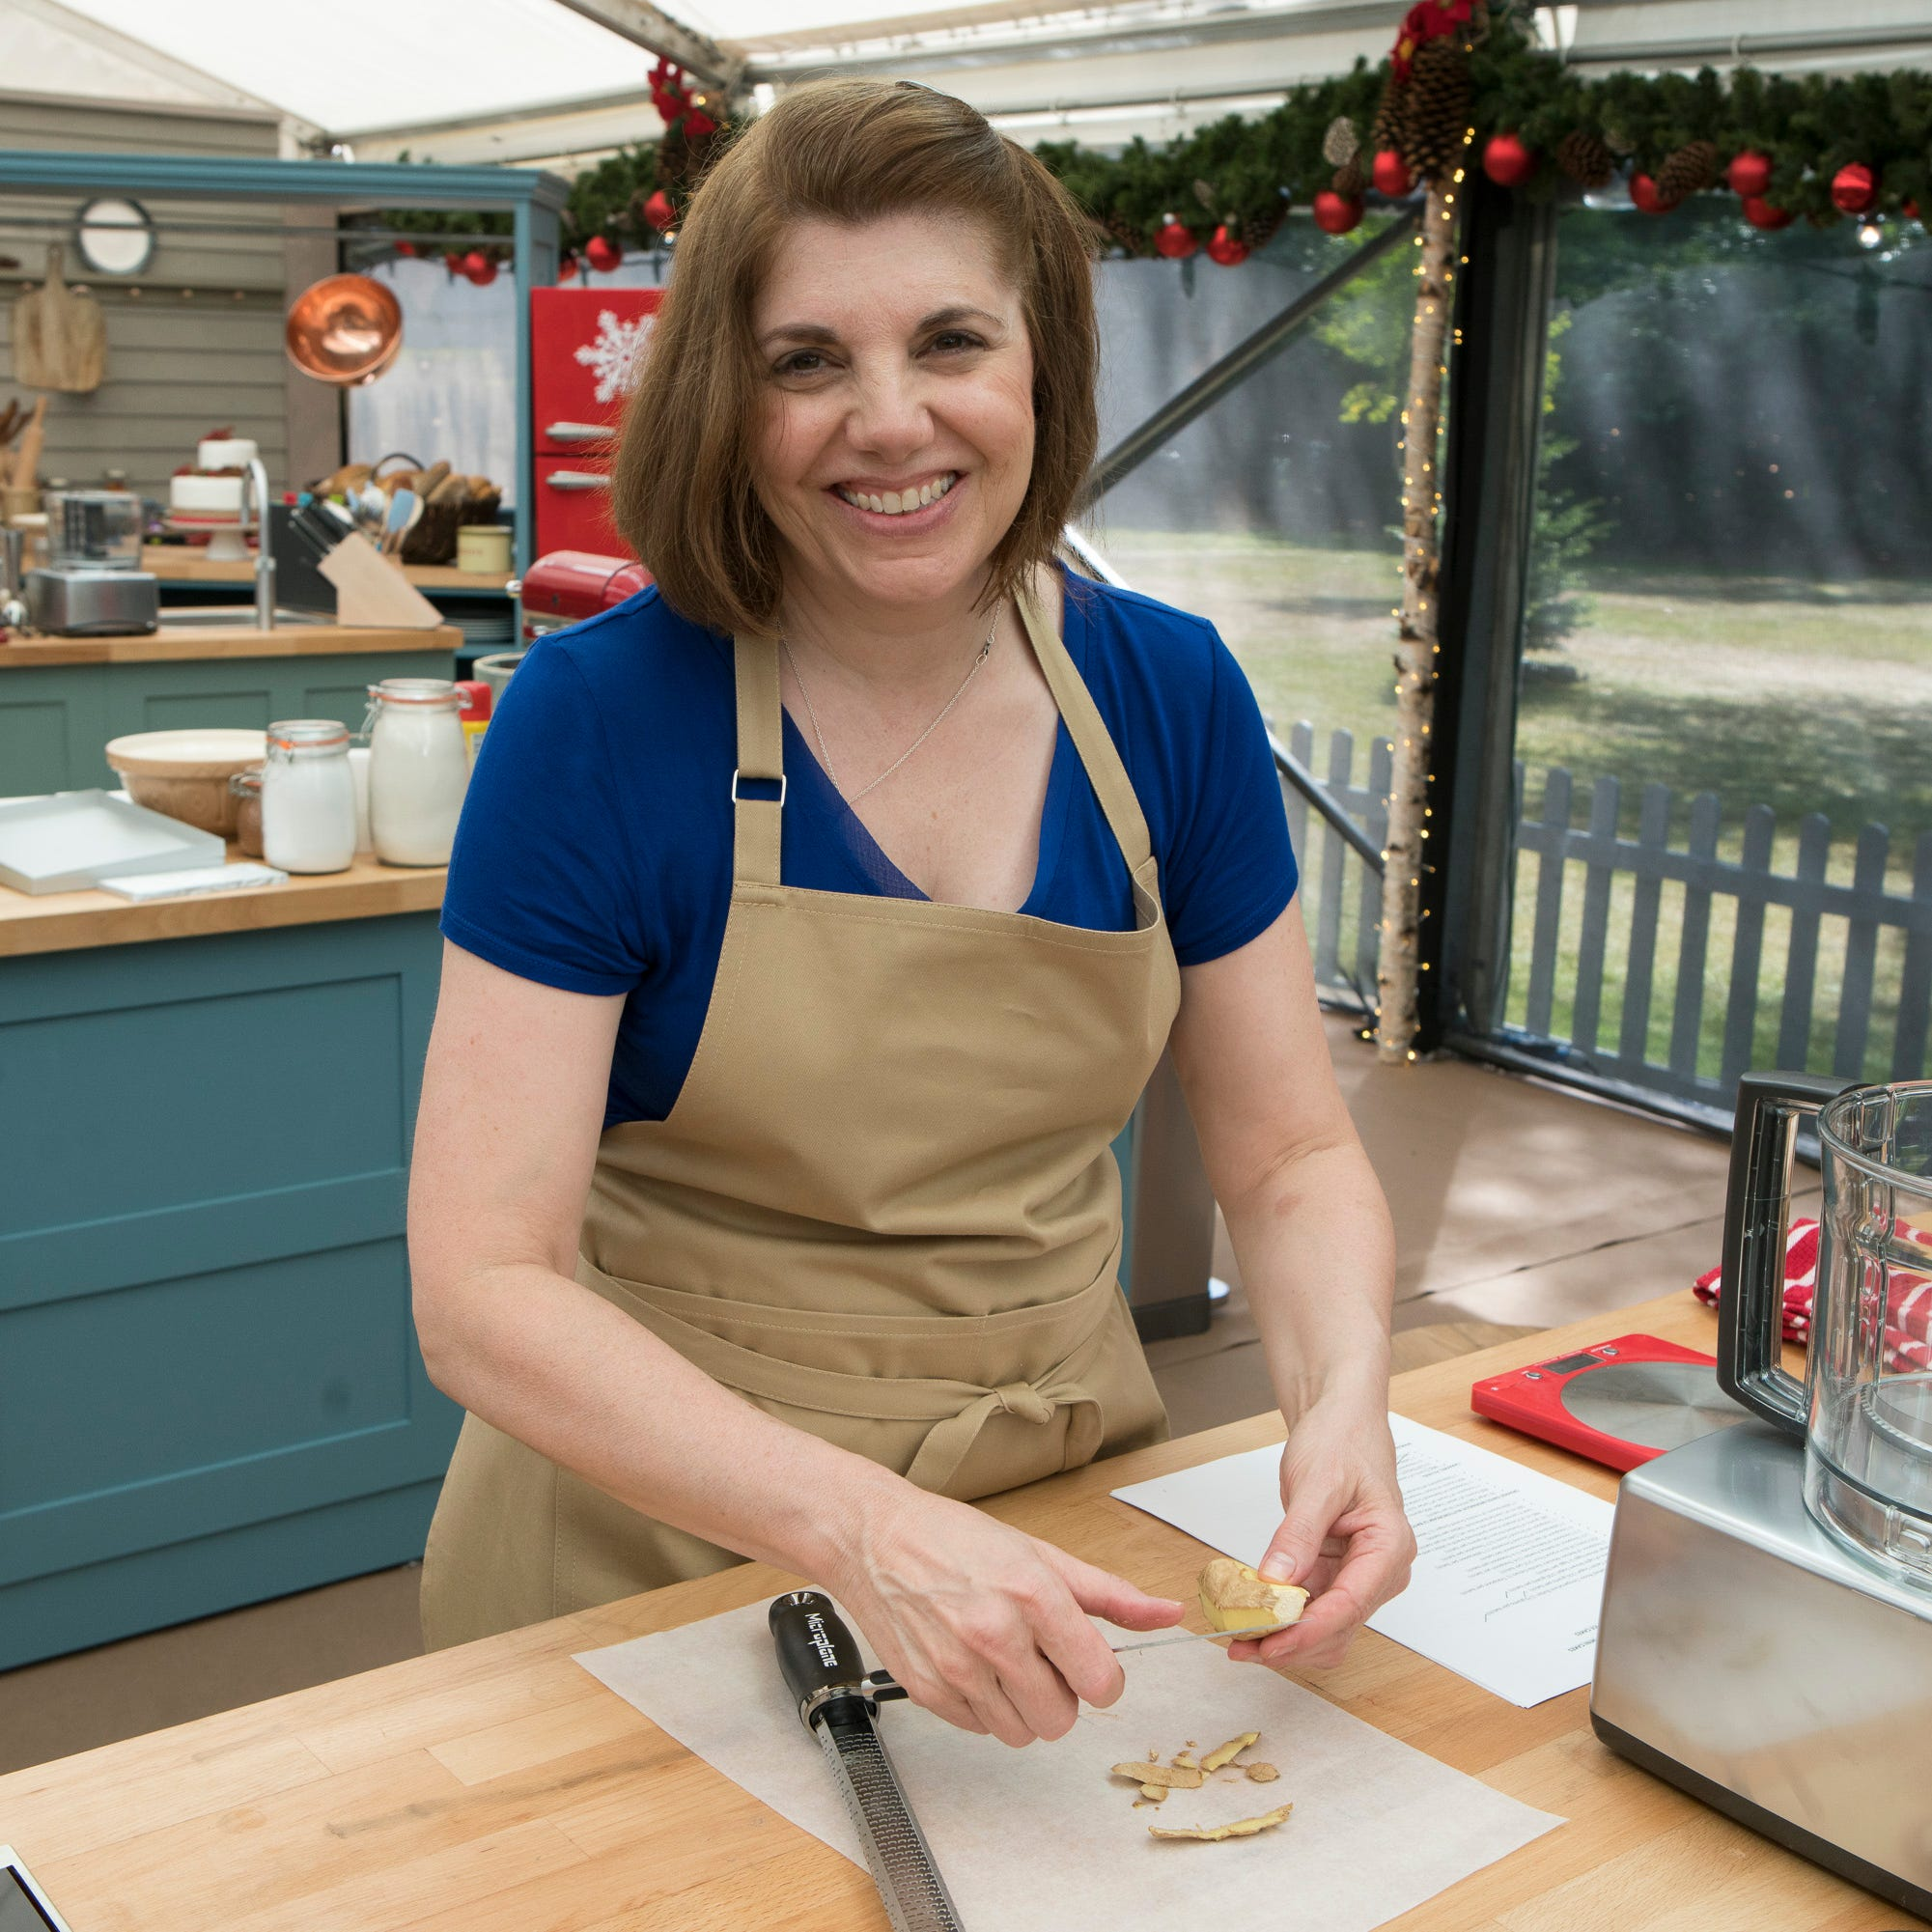 Westchester baker competes on ABC's 'Great American Baking Show'